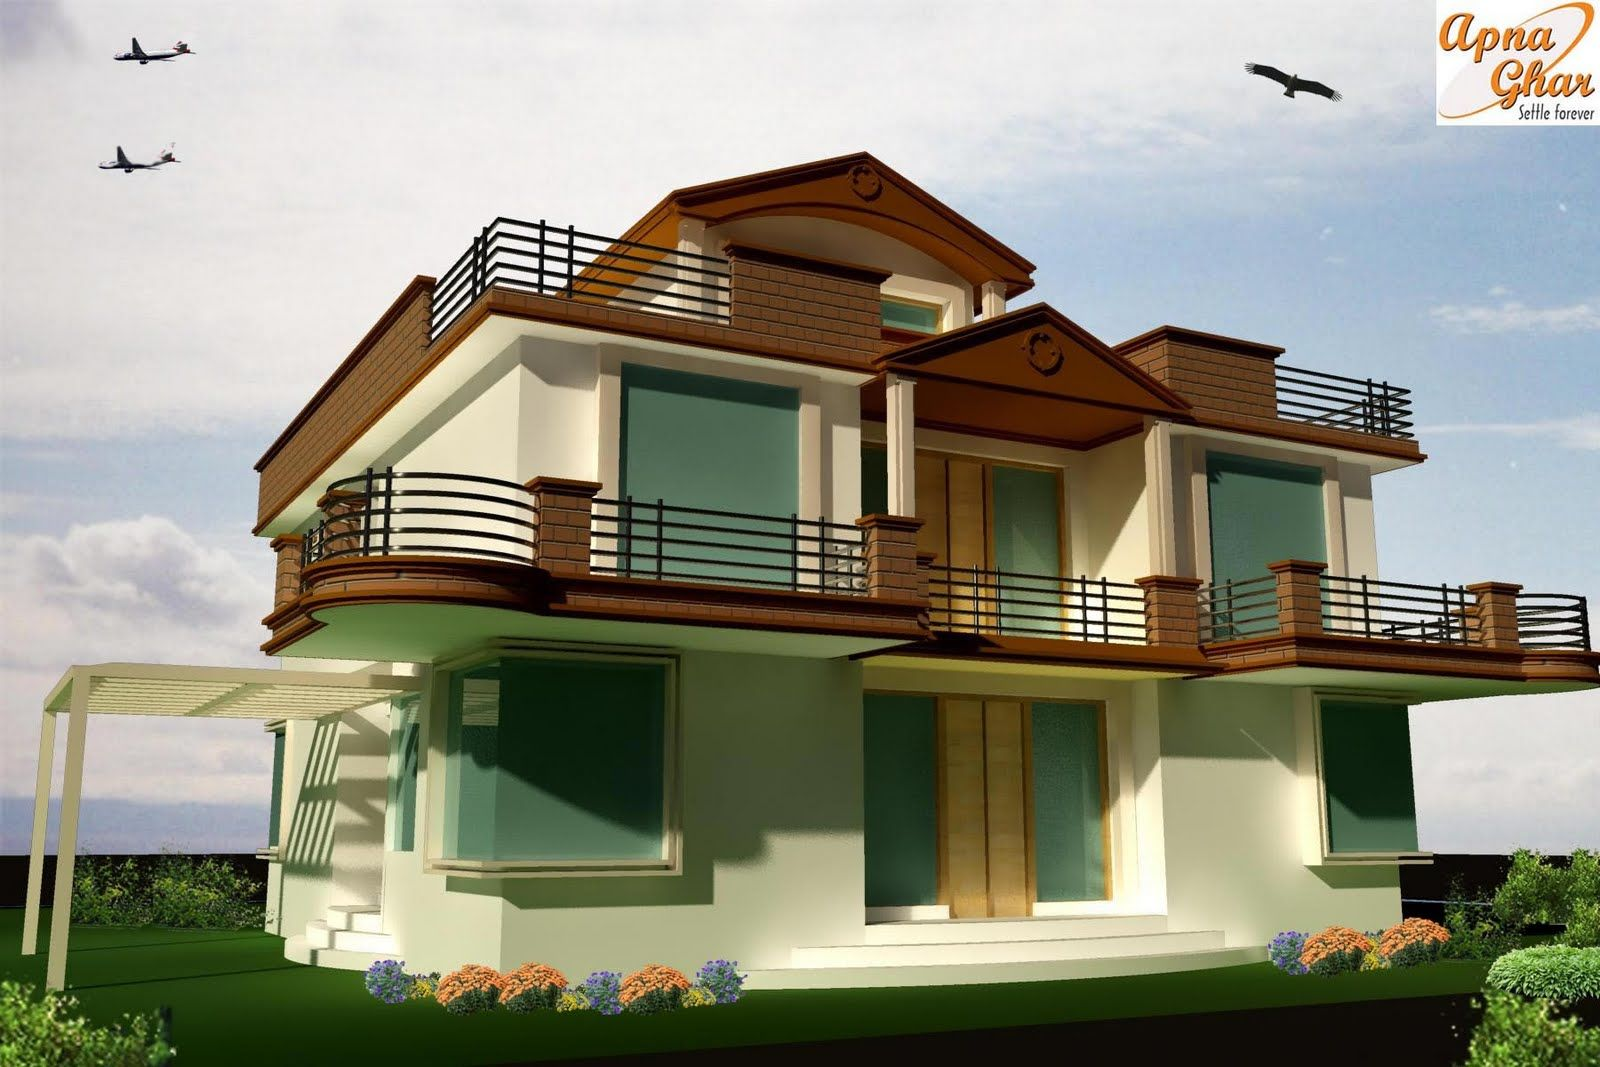 Architectural designs modern architectural house plans for Architecture design of house in india